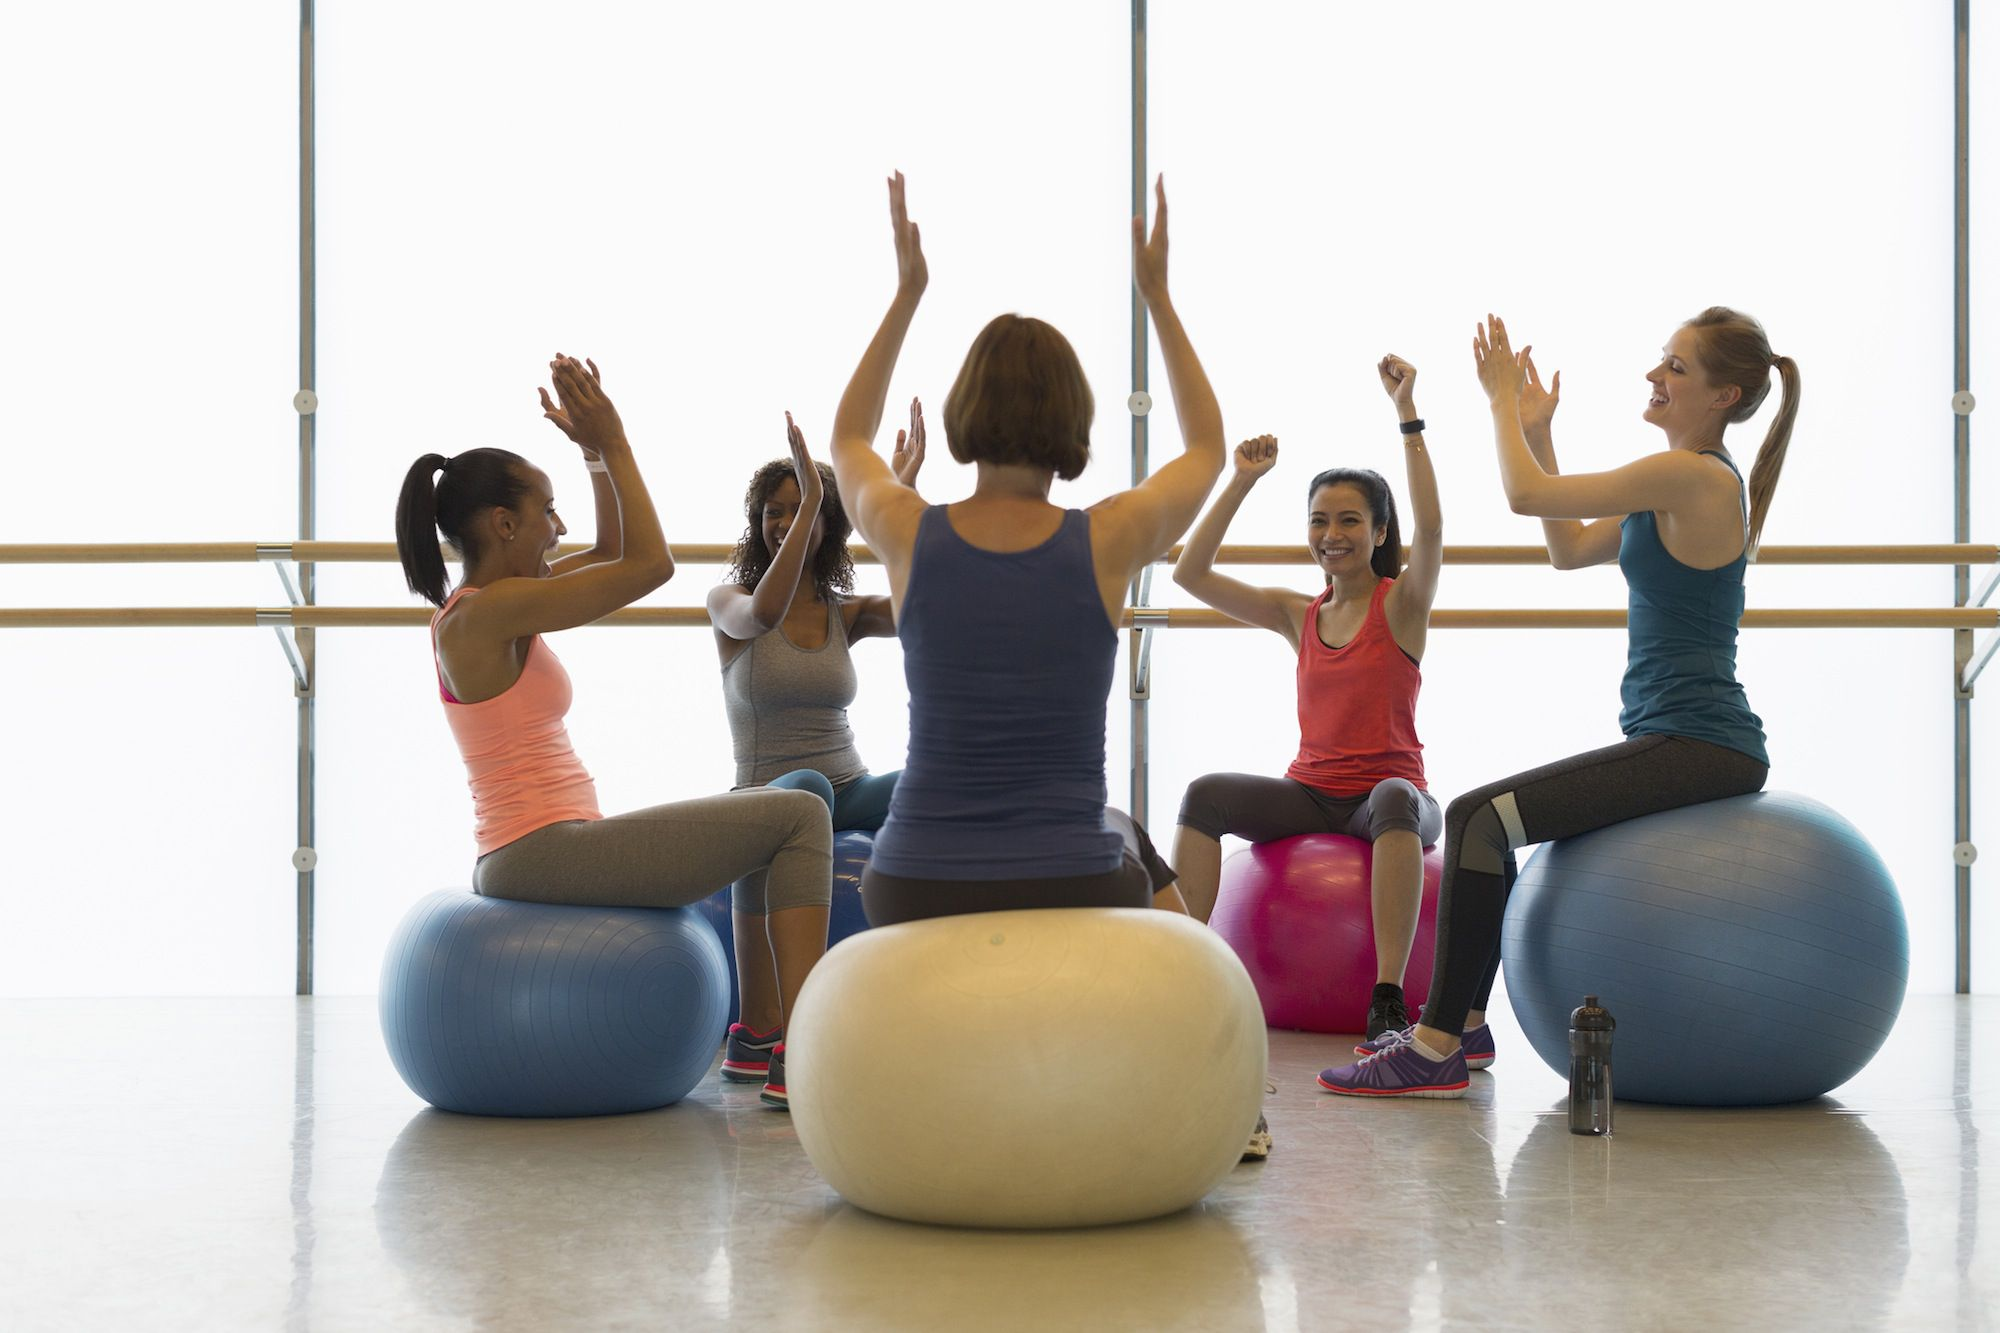 Types of Exercise Balls for Workouts